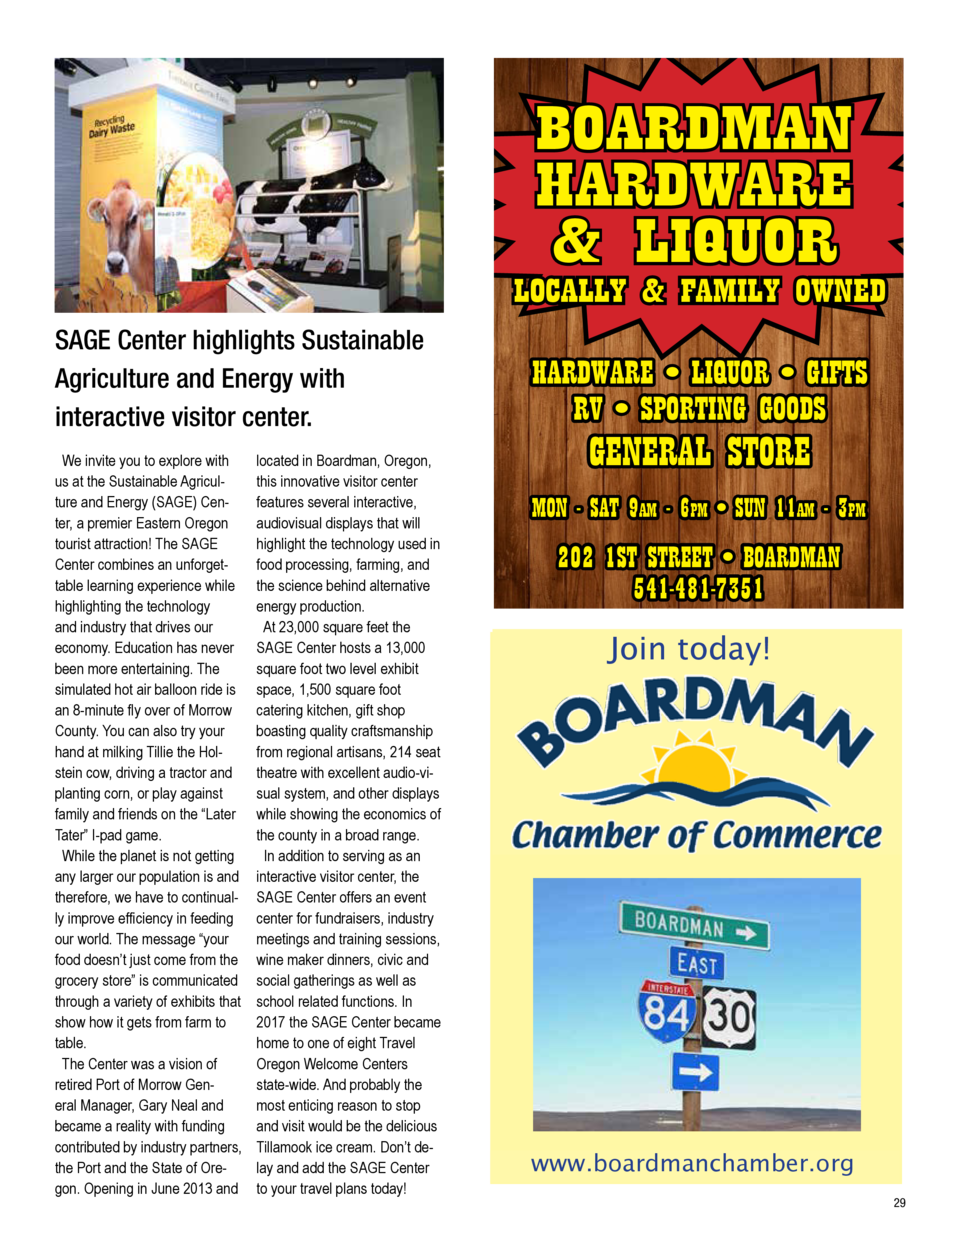 BOARDMAN HARDWARE   LIQUOR  LOCALLY   FAMILY OWNED  2018 Grant Recipient  Business Incentive Grant Program START UP. ENHAN...